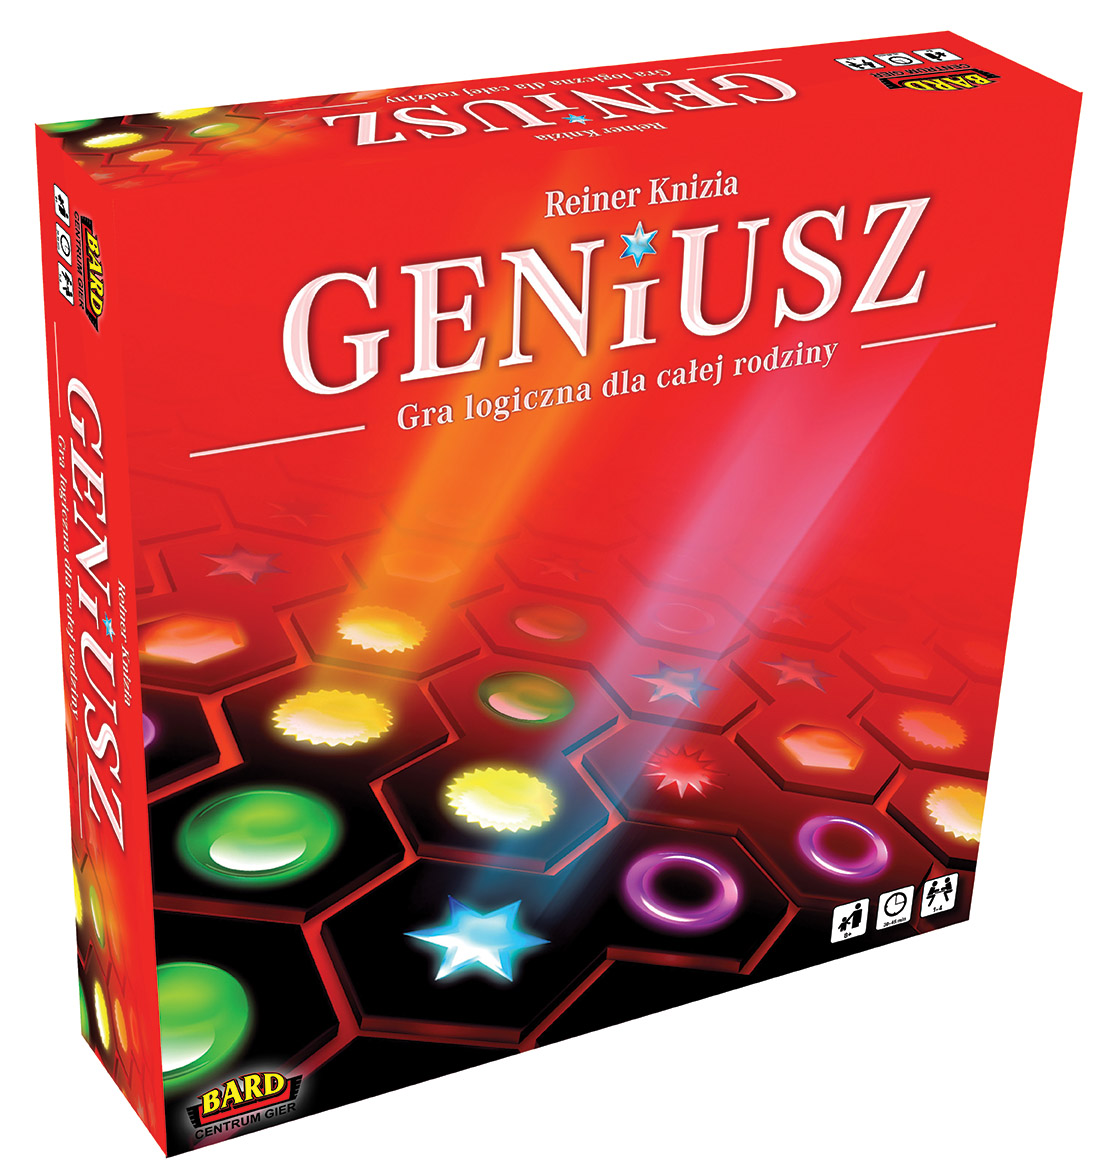 Geniusz box 3D lewo new small